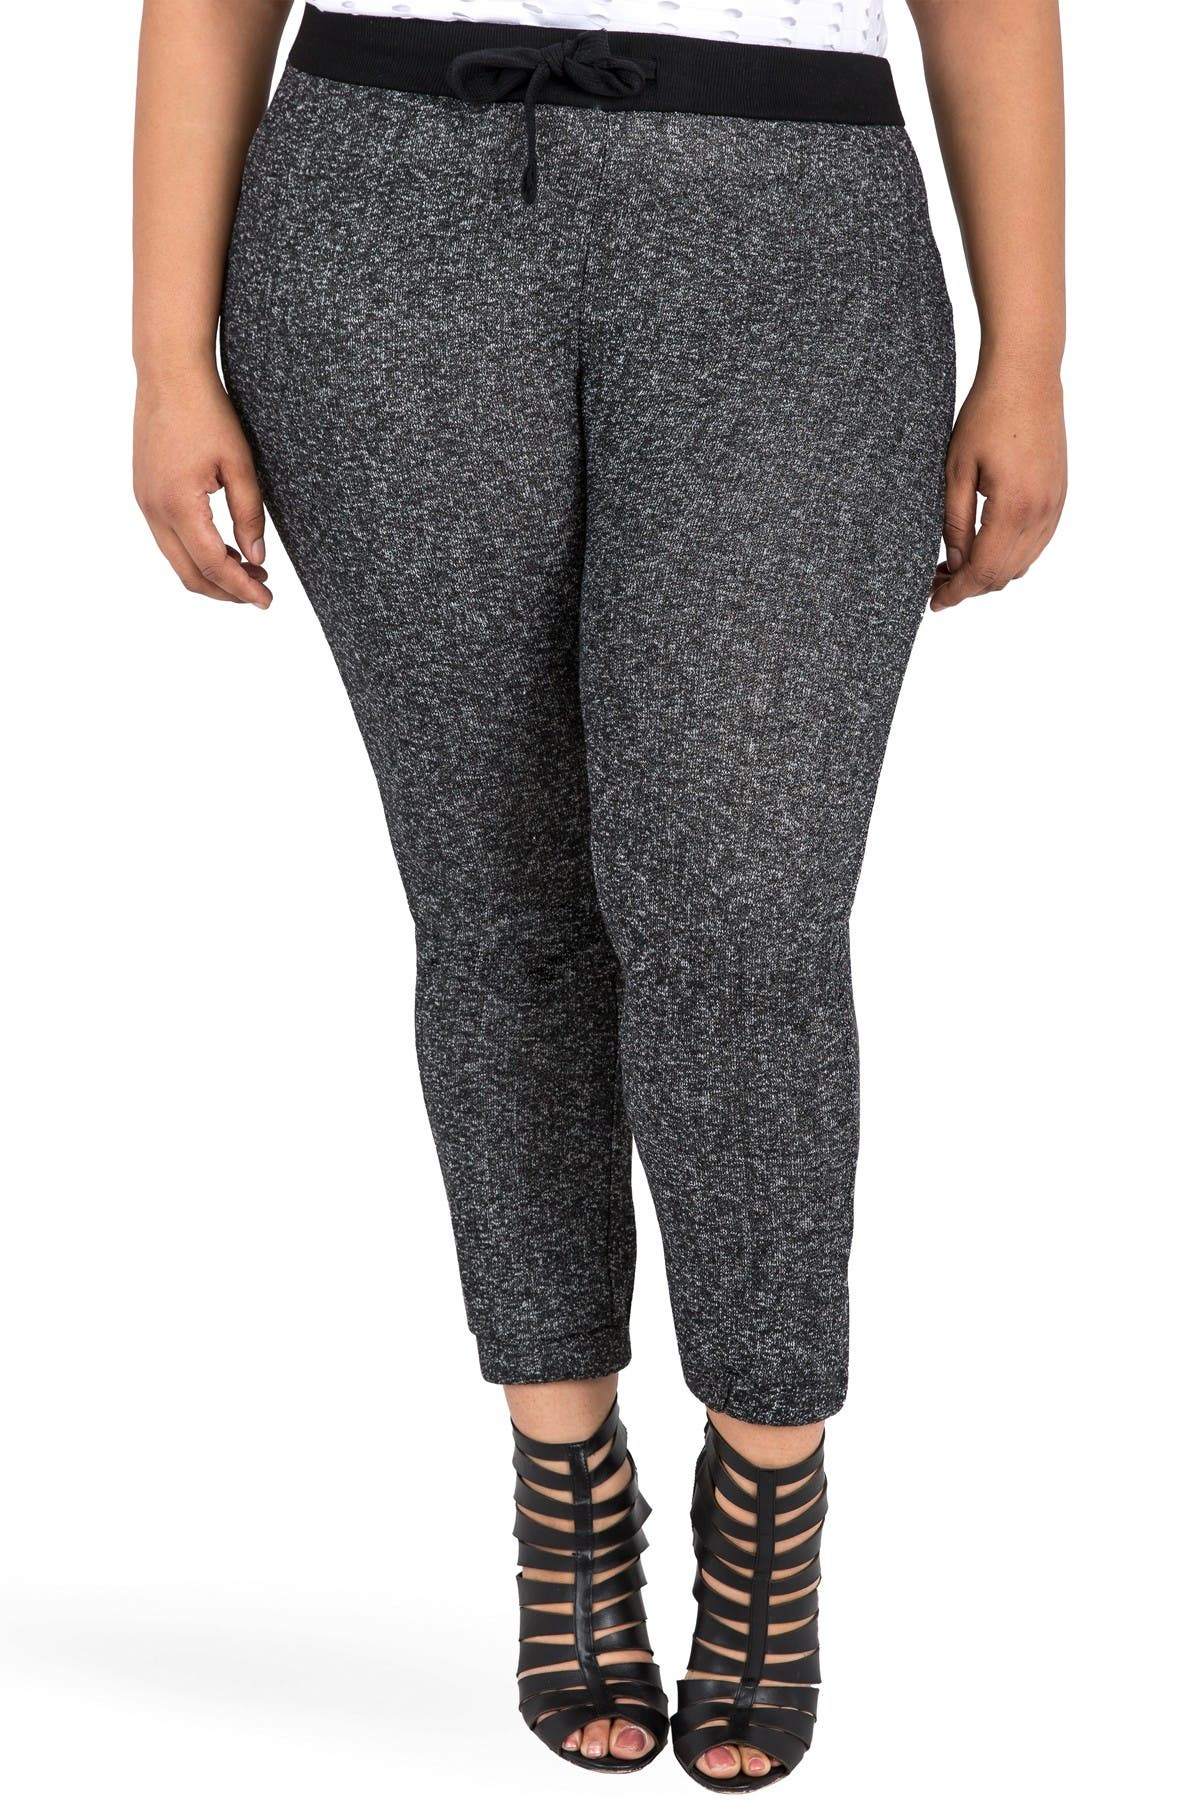 Image of Poetic Justice Jogger Pants